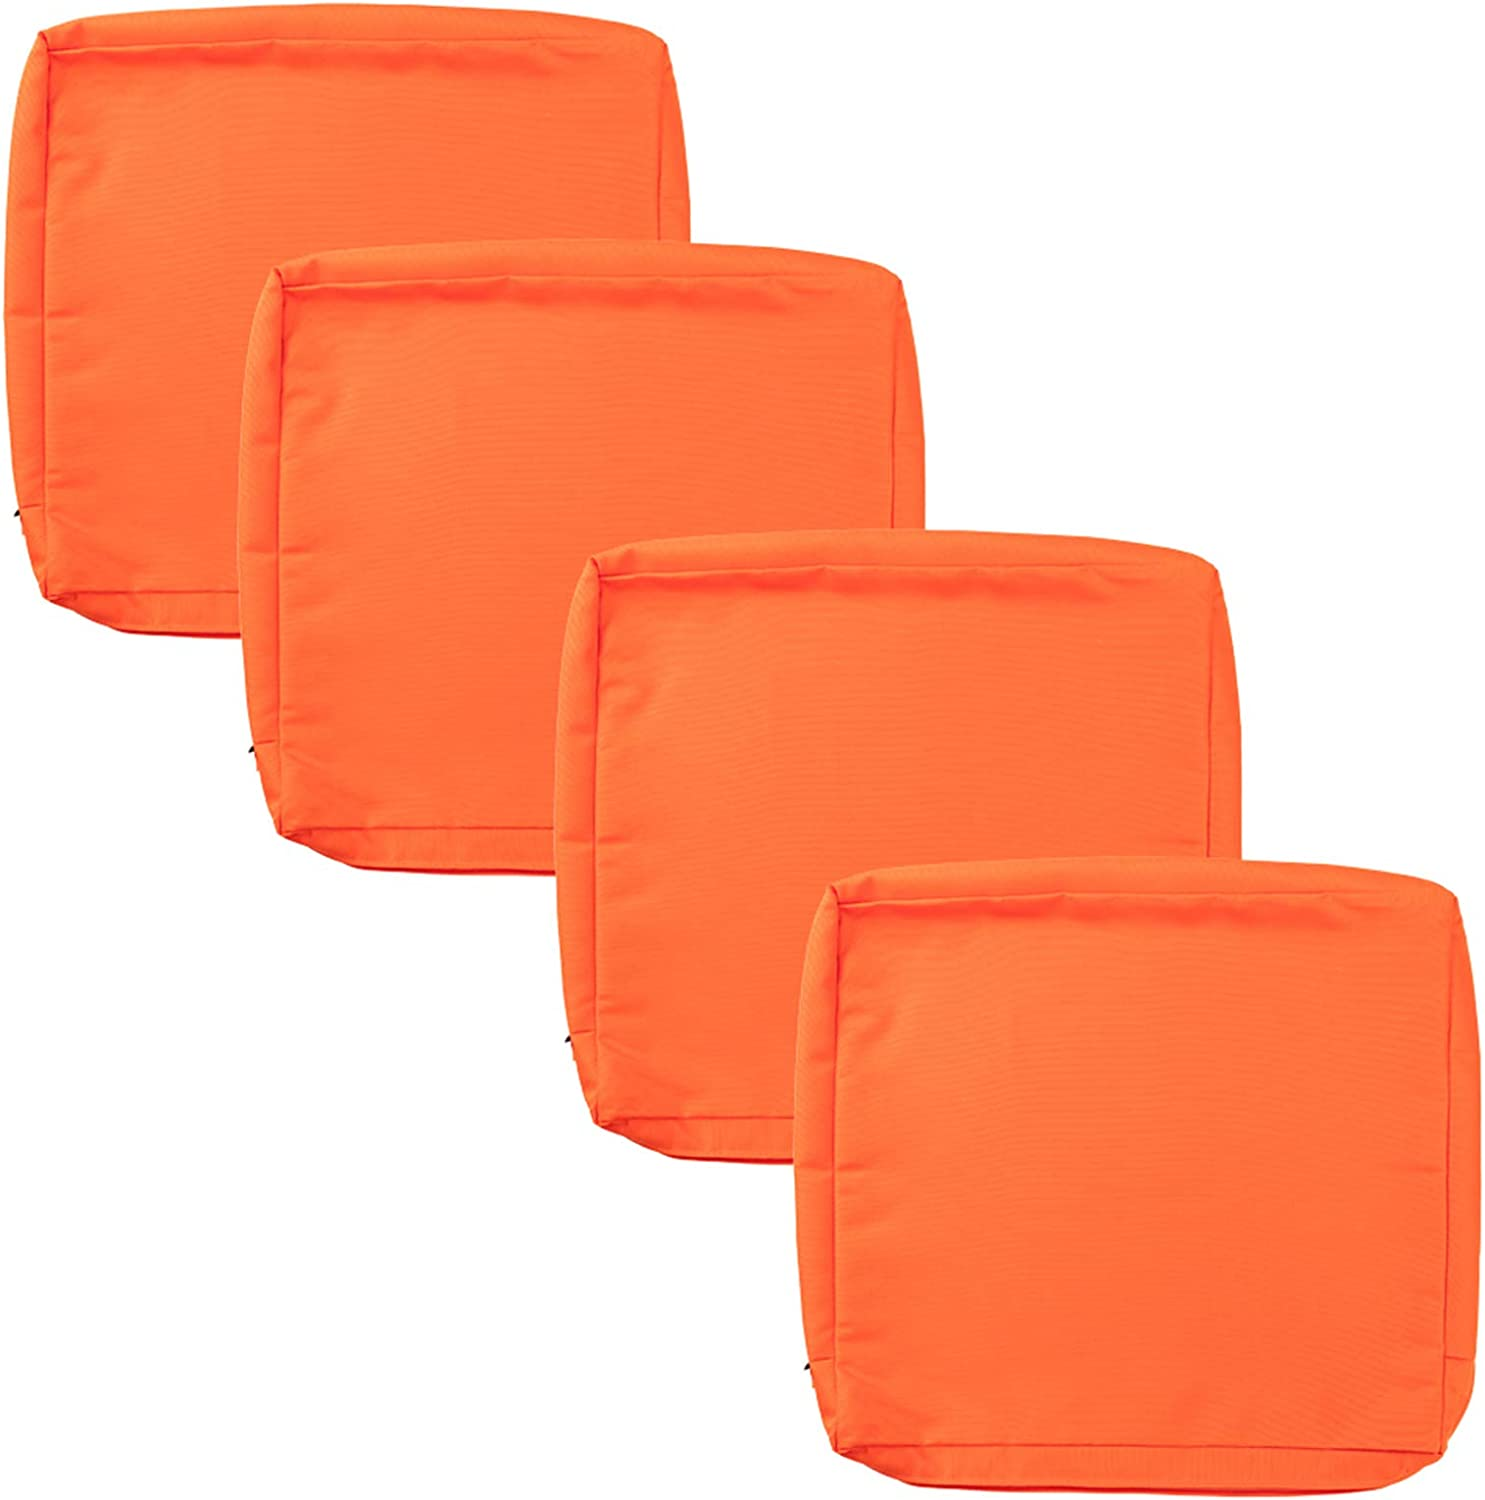 """Patio Chair Cushion Covers 4 Pack, Outdoor Seat Cushion Cover 24""""X22""""X4"""", Replacement Covers Only"""